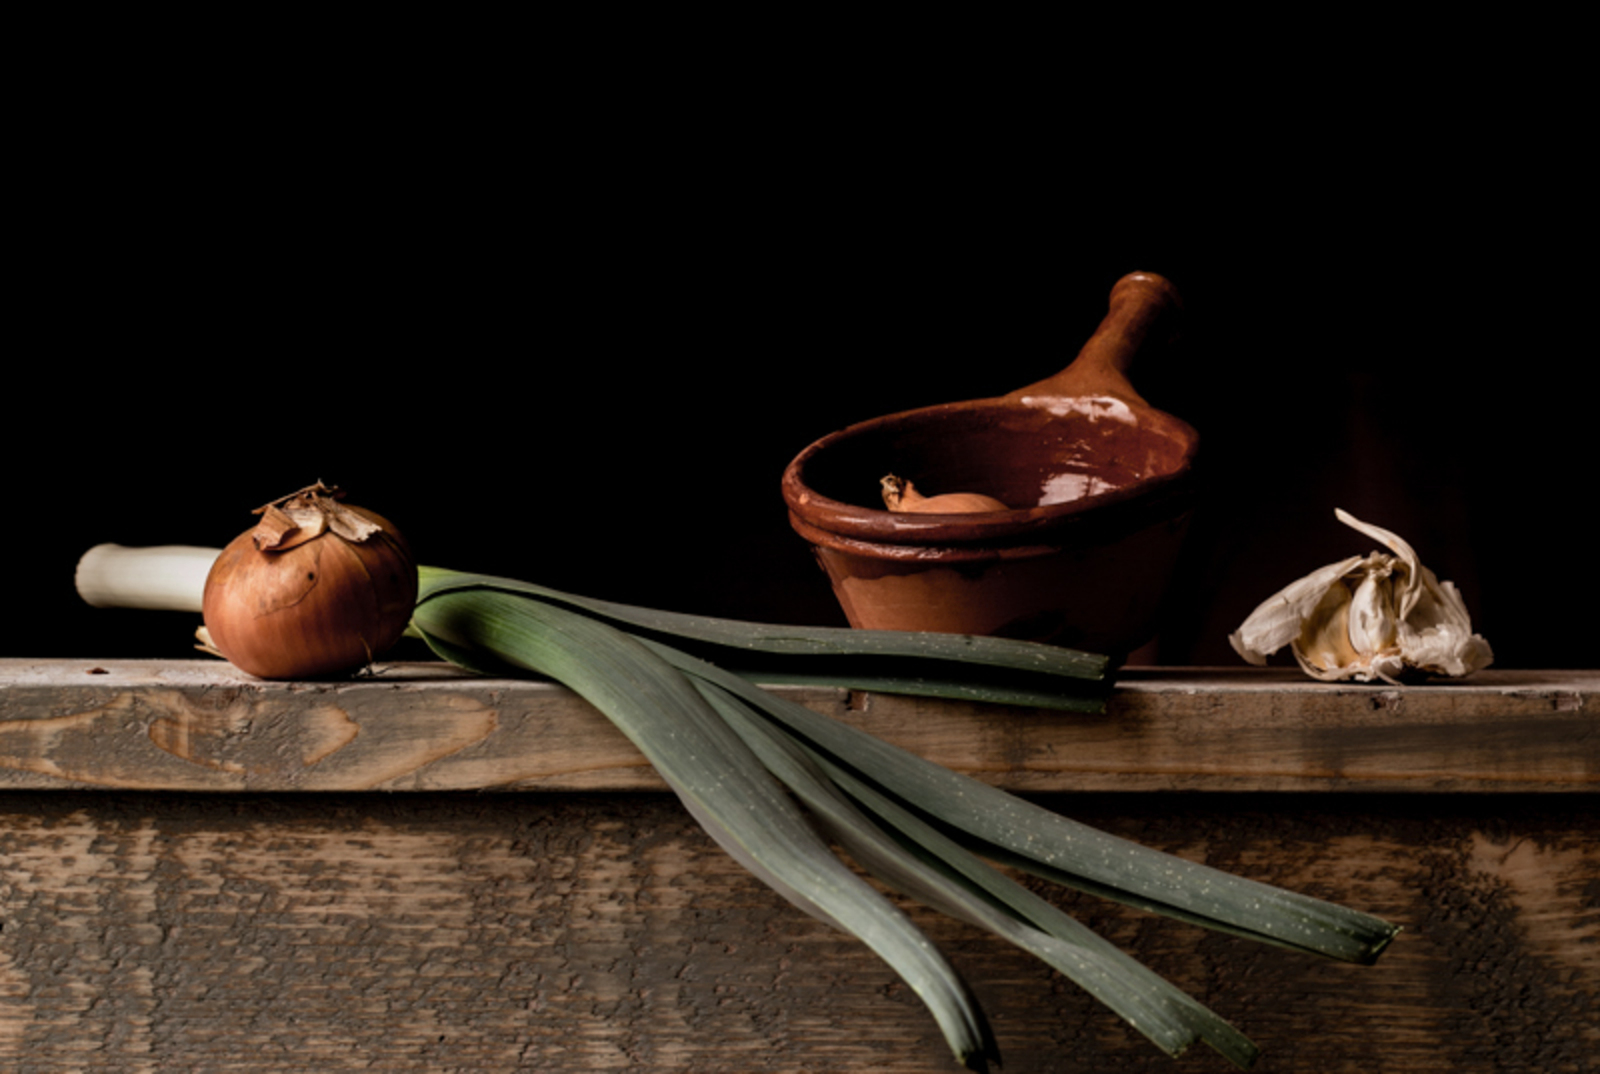 Still life with Leek